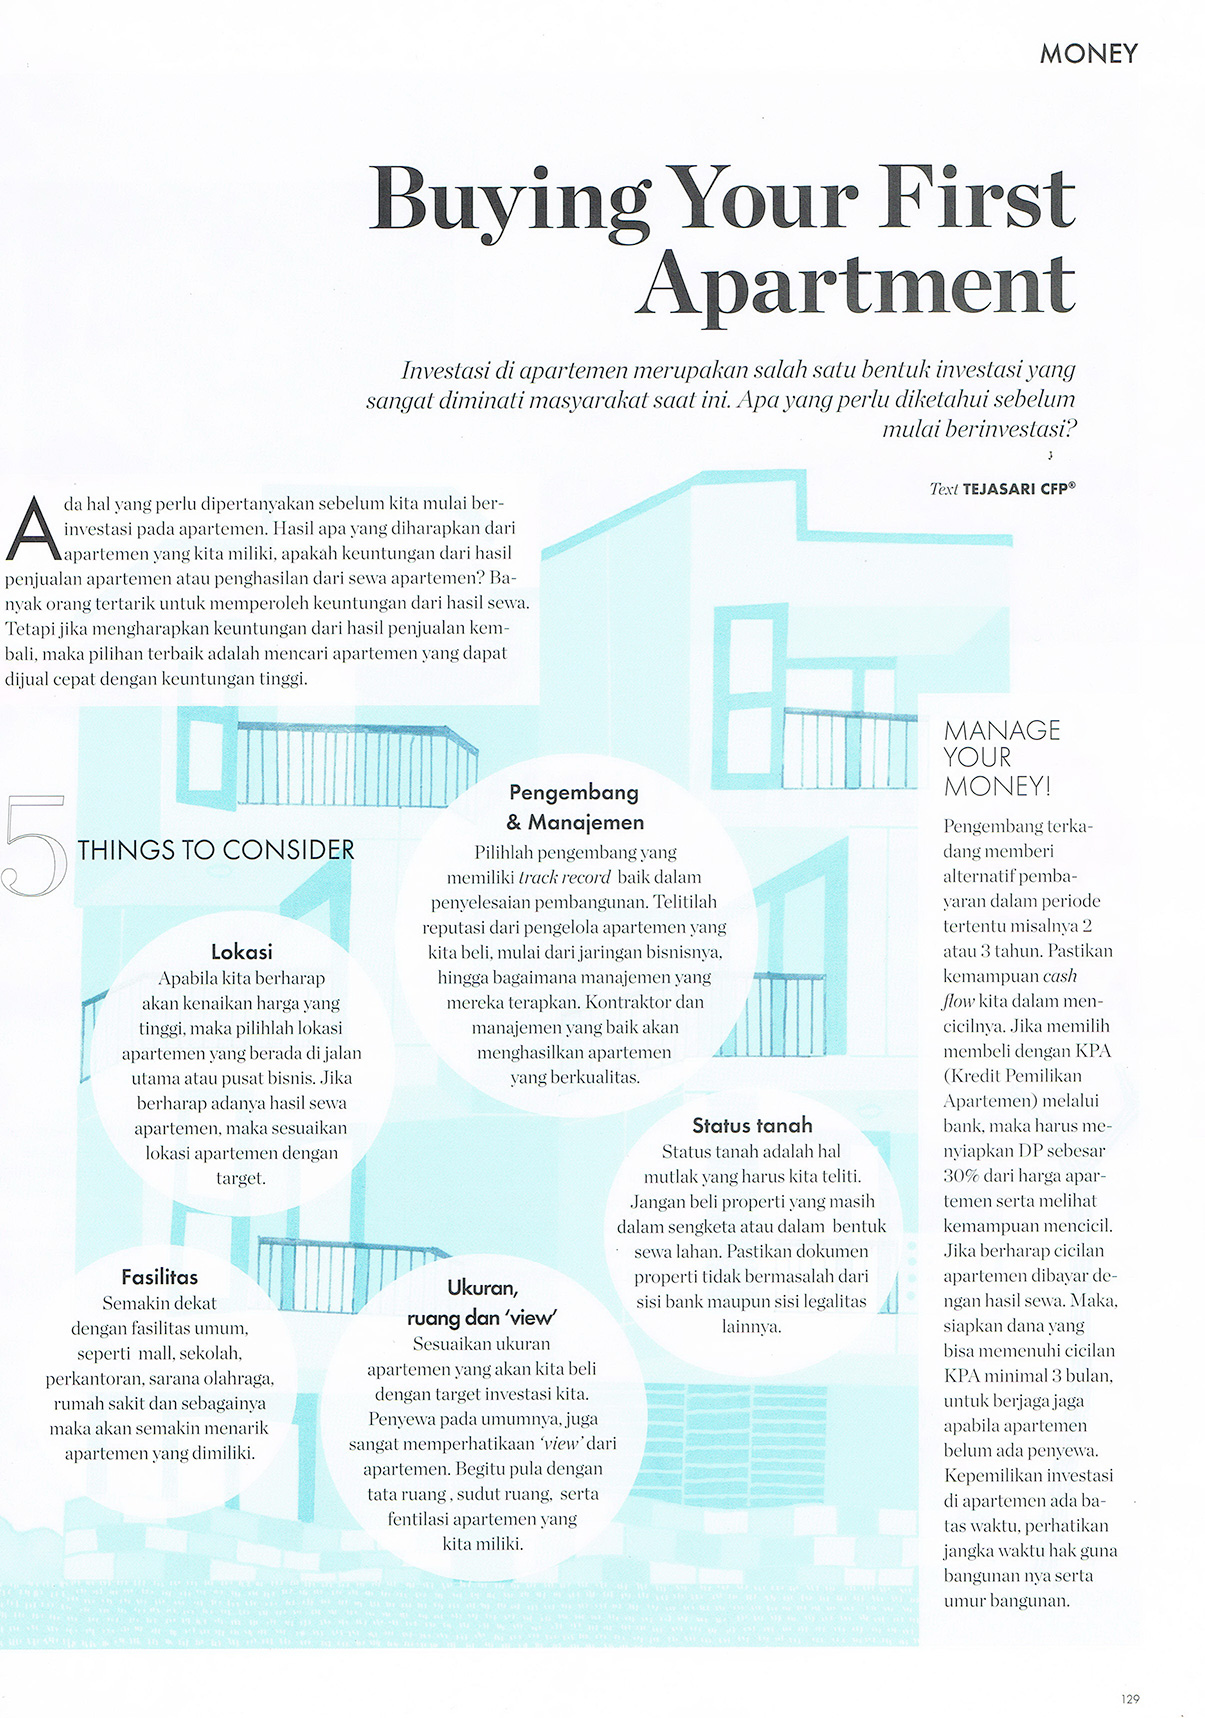 Buying Your First Apartment